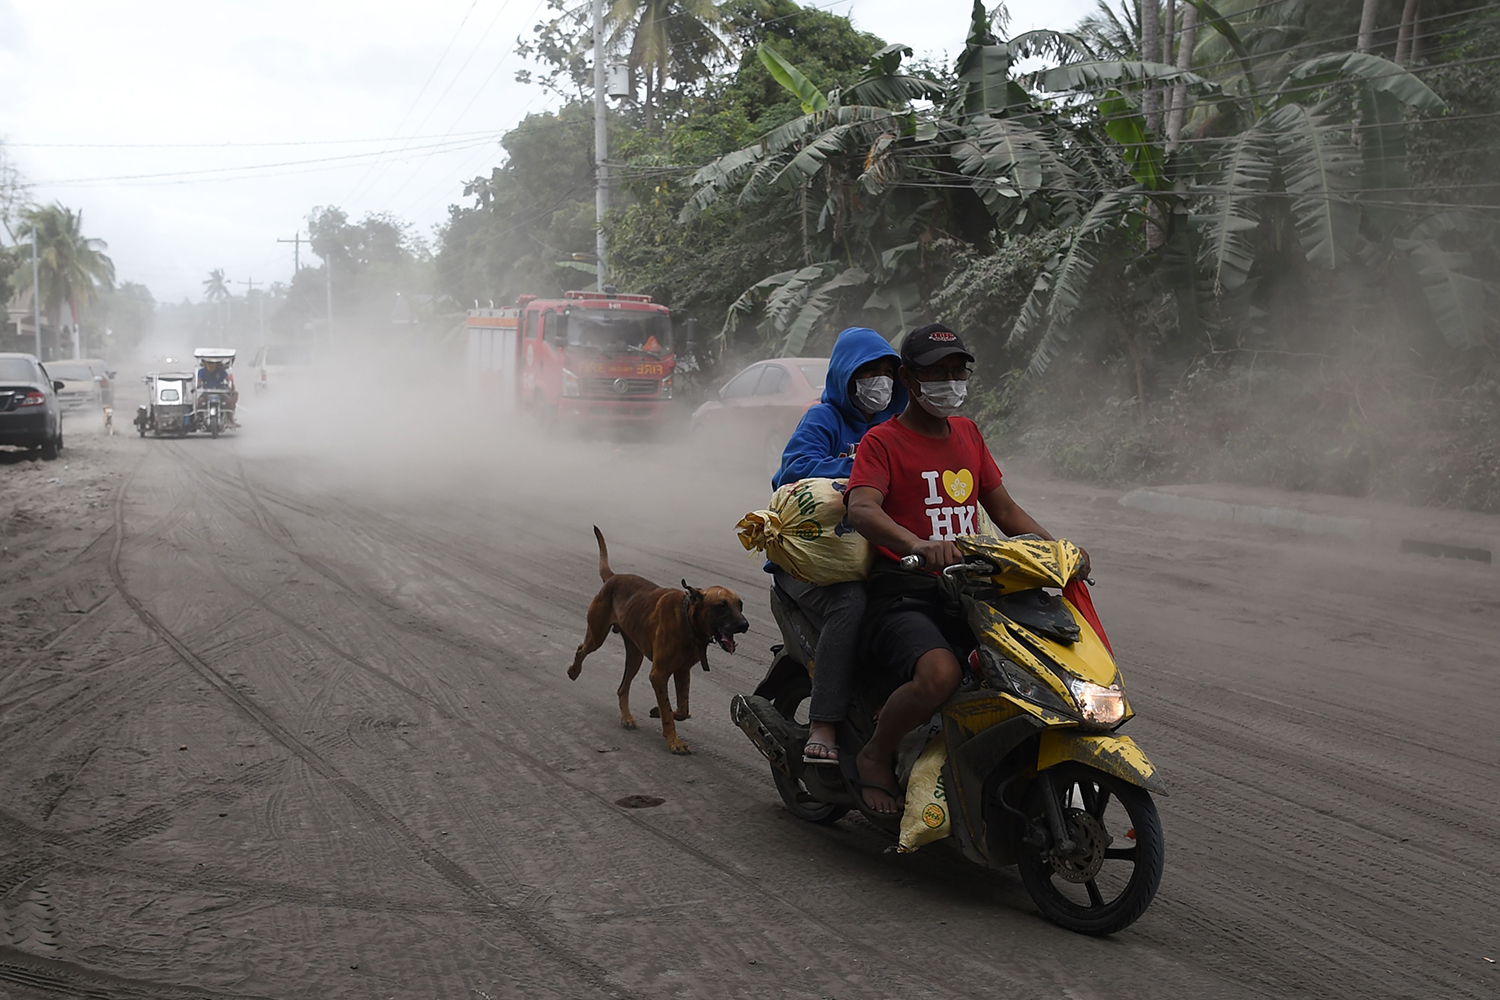 A dog trails its owners along a volcanic ash-covered road in Agoncillo town, Batangas province south of Manila in the Philippines on Jan. 15. TED ALJIBE/AFP via Getty Images